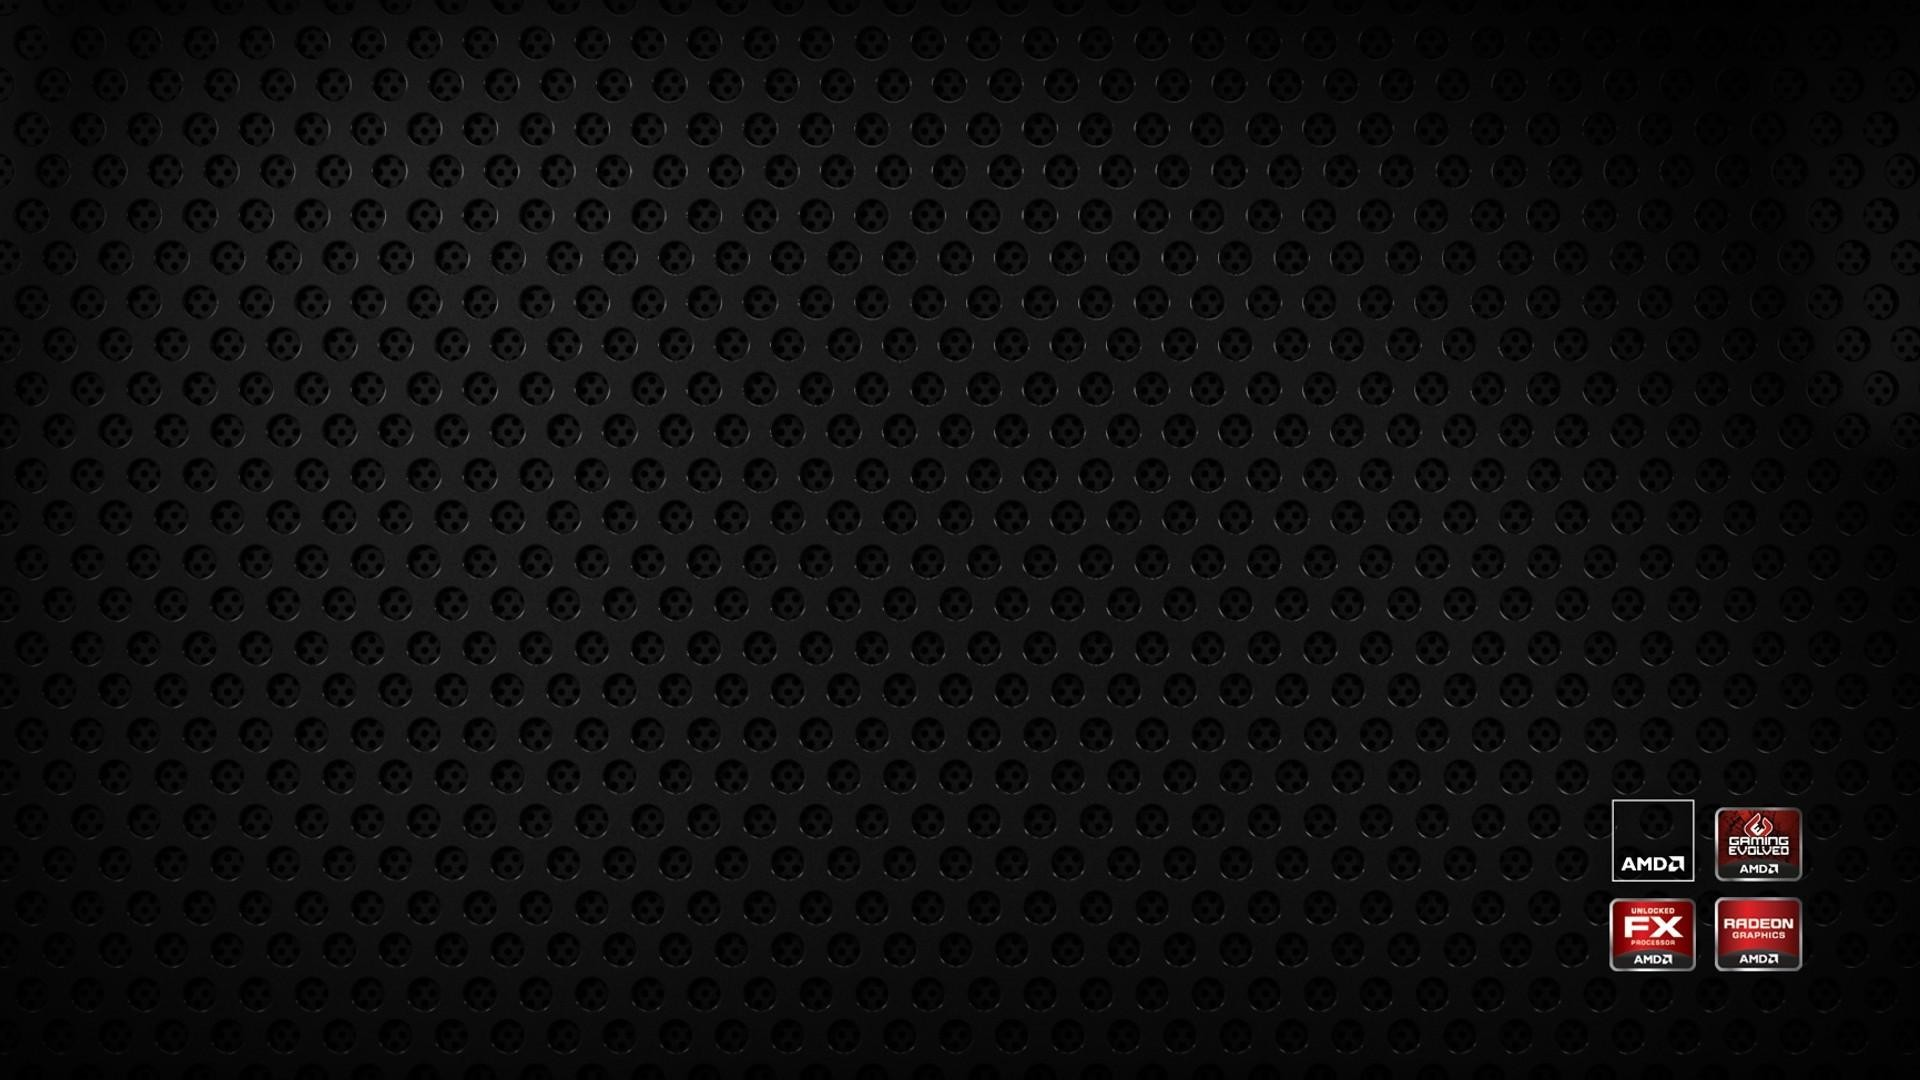 amd 4k wallpaper (75+ images)